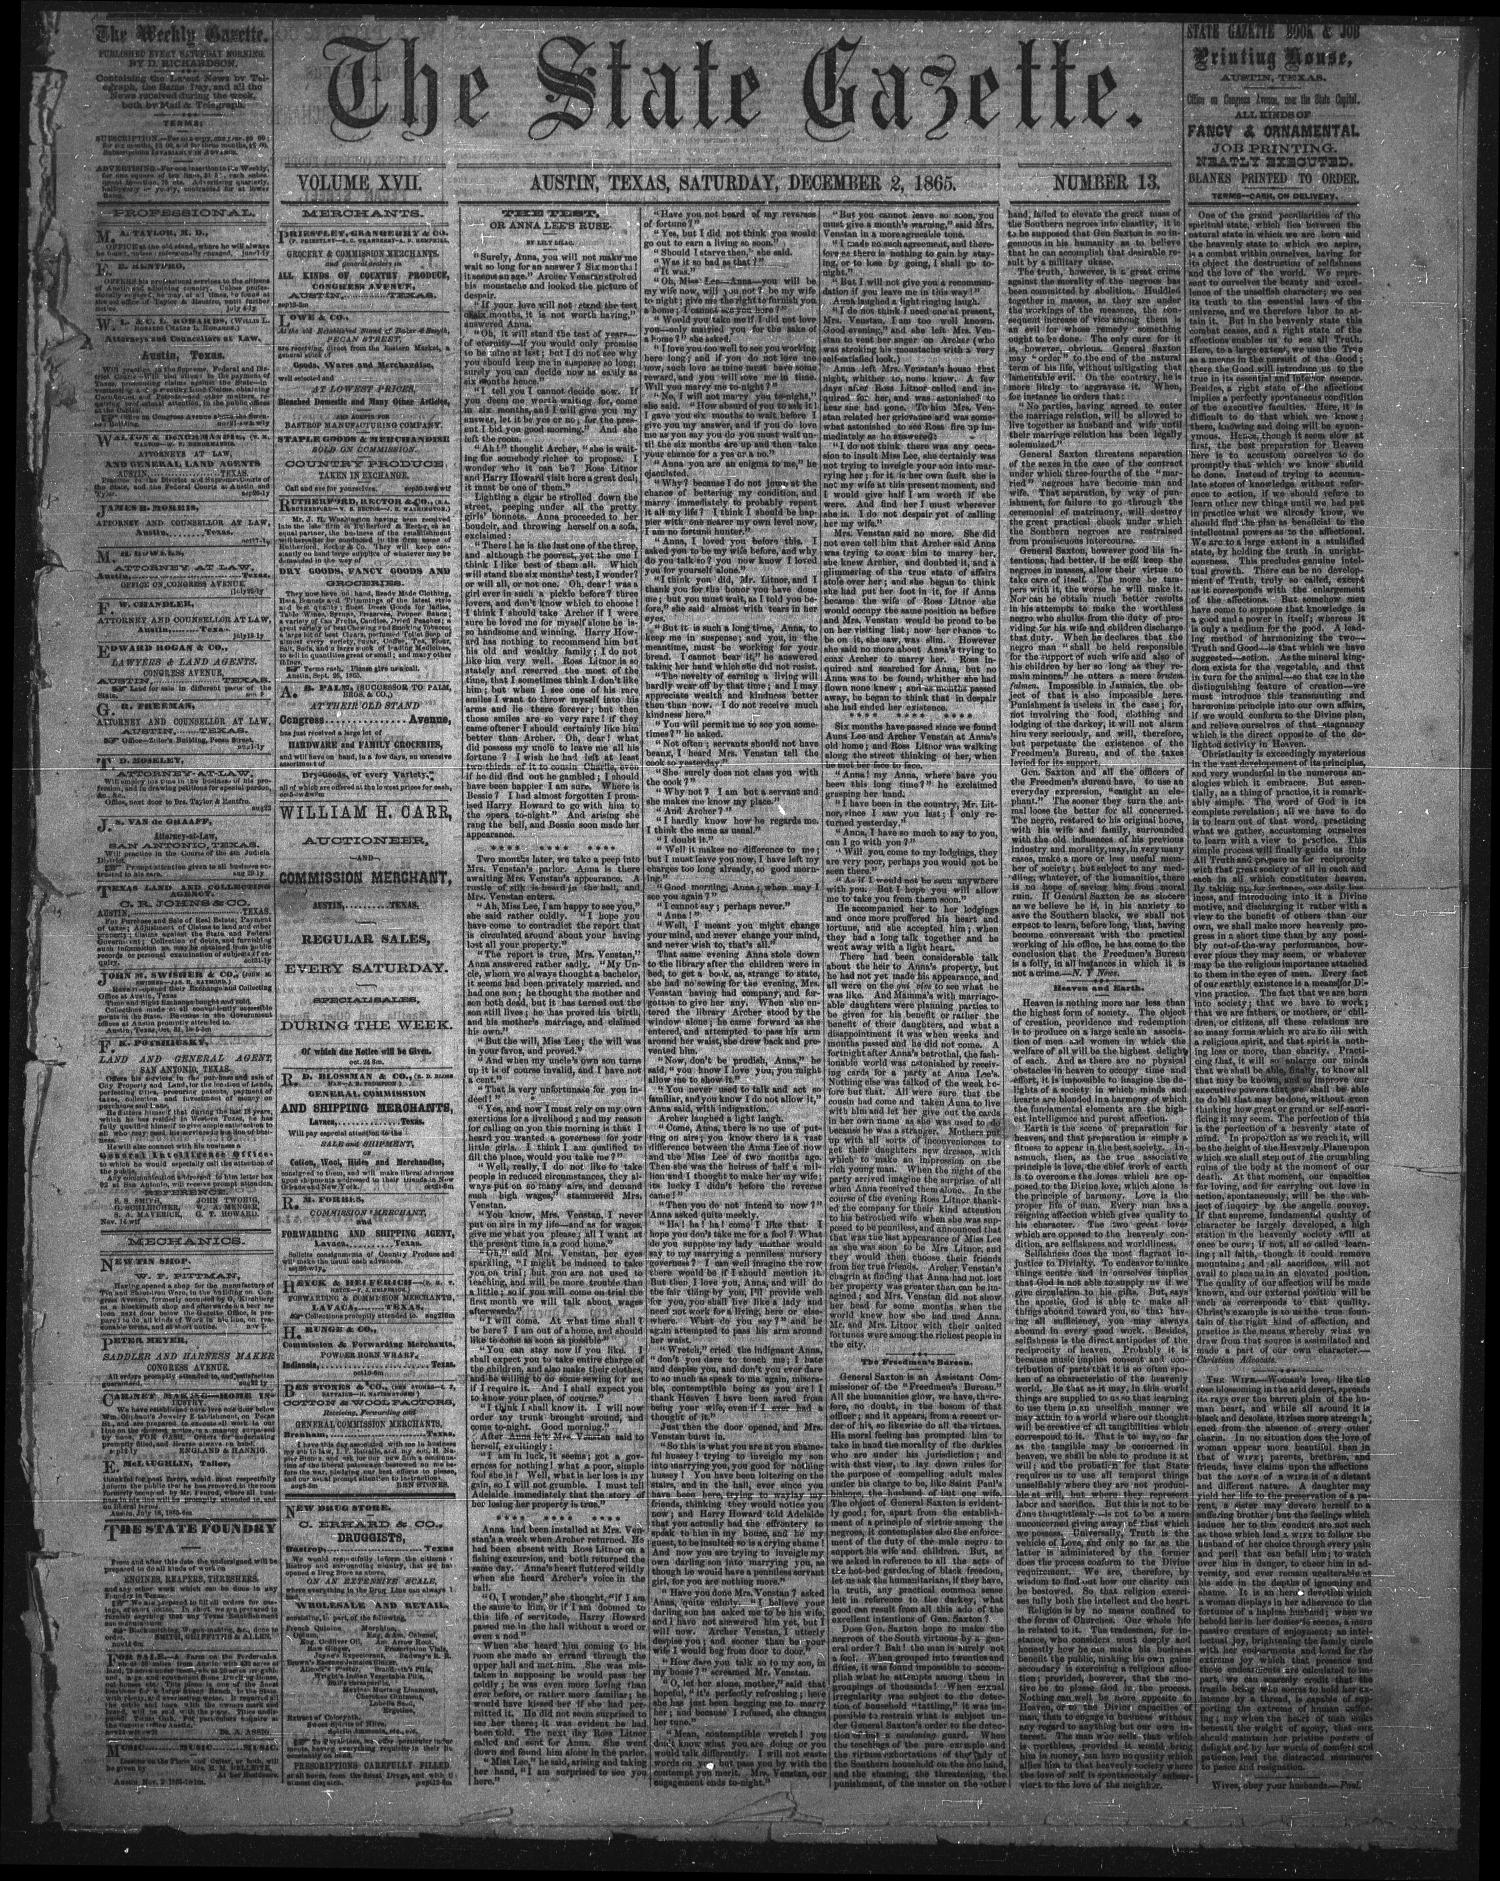 The State Gazette. (Austin, Tex.), Vol. 17, No. 13, Ed. 1 Saturday, December 2, 1865                                                                                                      [Sequence #]: 1 of 4